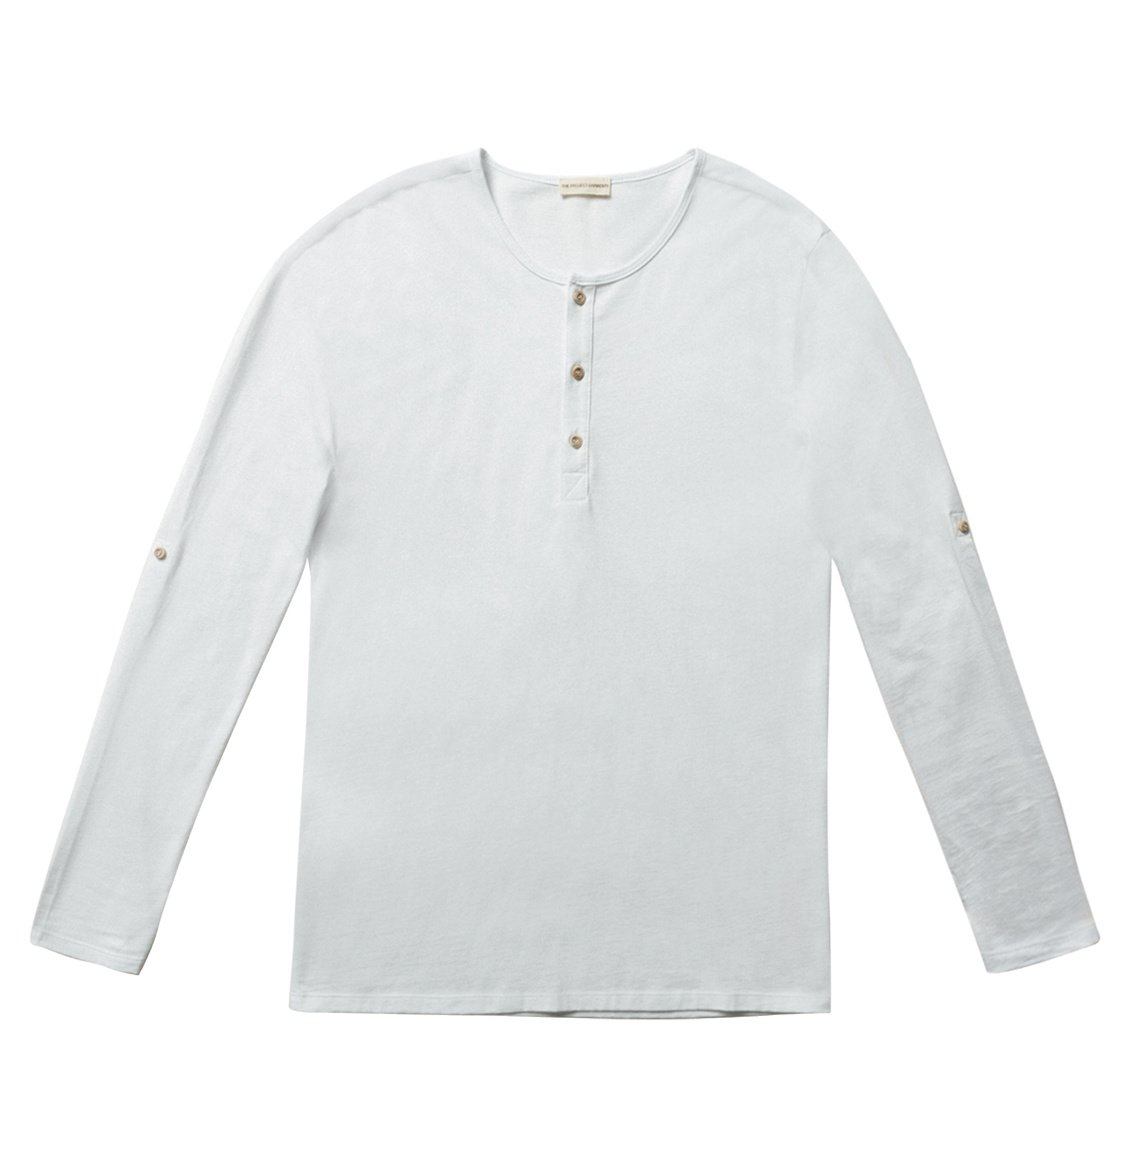 The Project Garments Henley Organic Cotton Long Sleeve T-shirt White